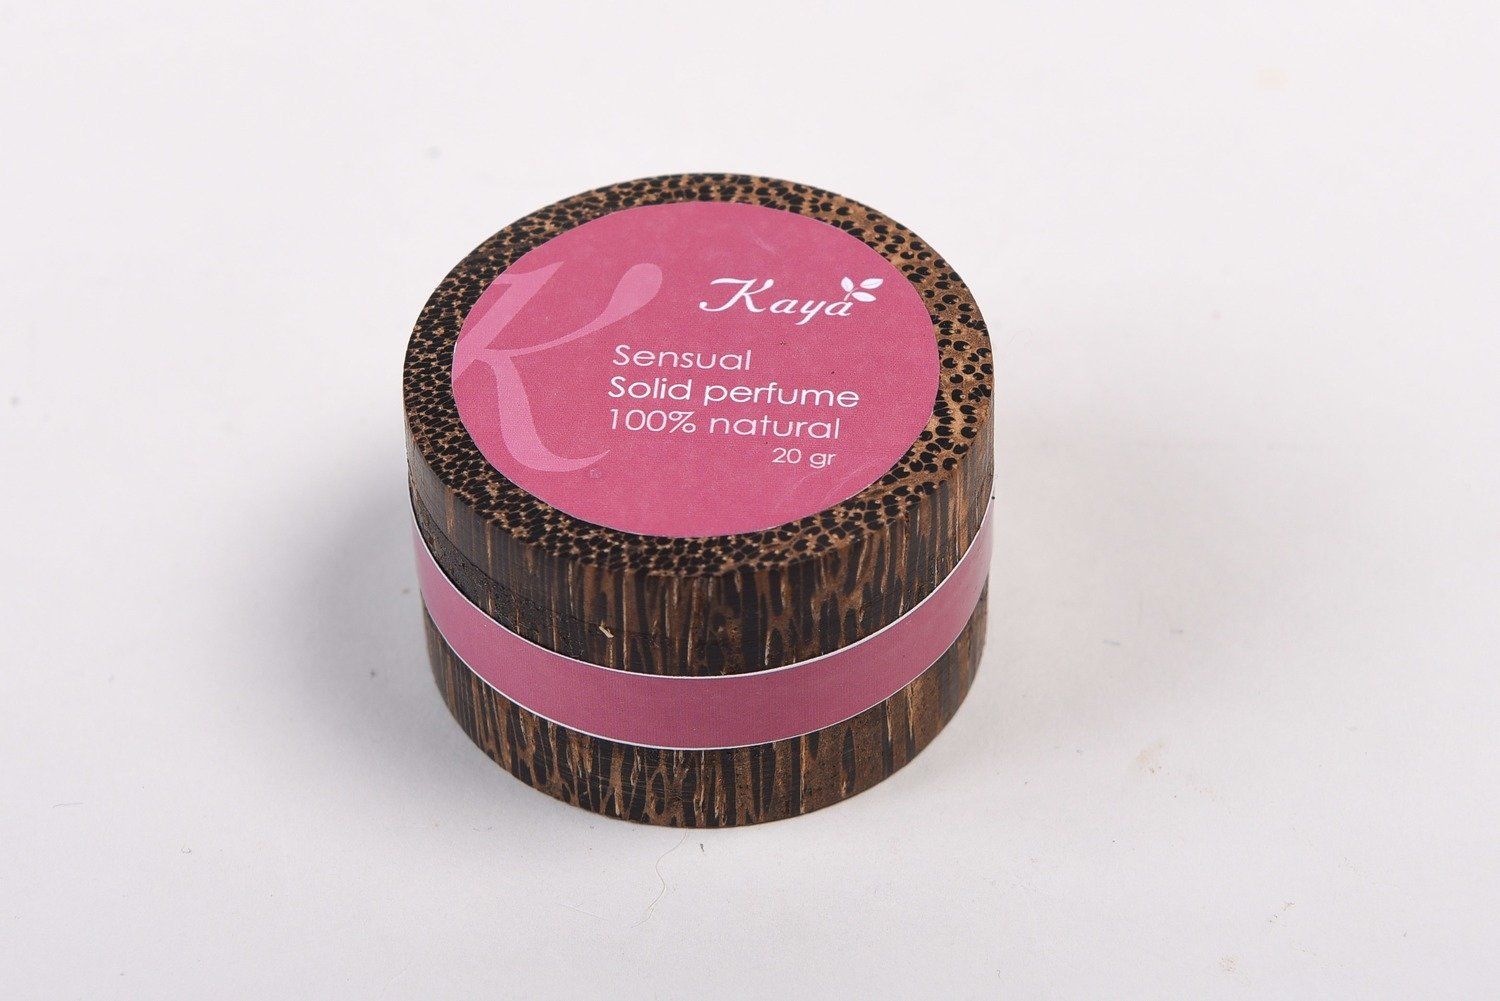 Sensual Solid Perfume, 100% Natural